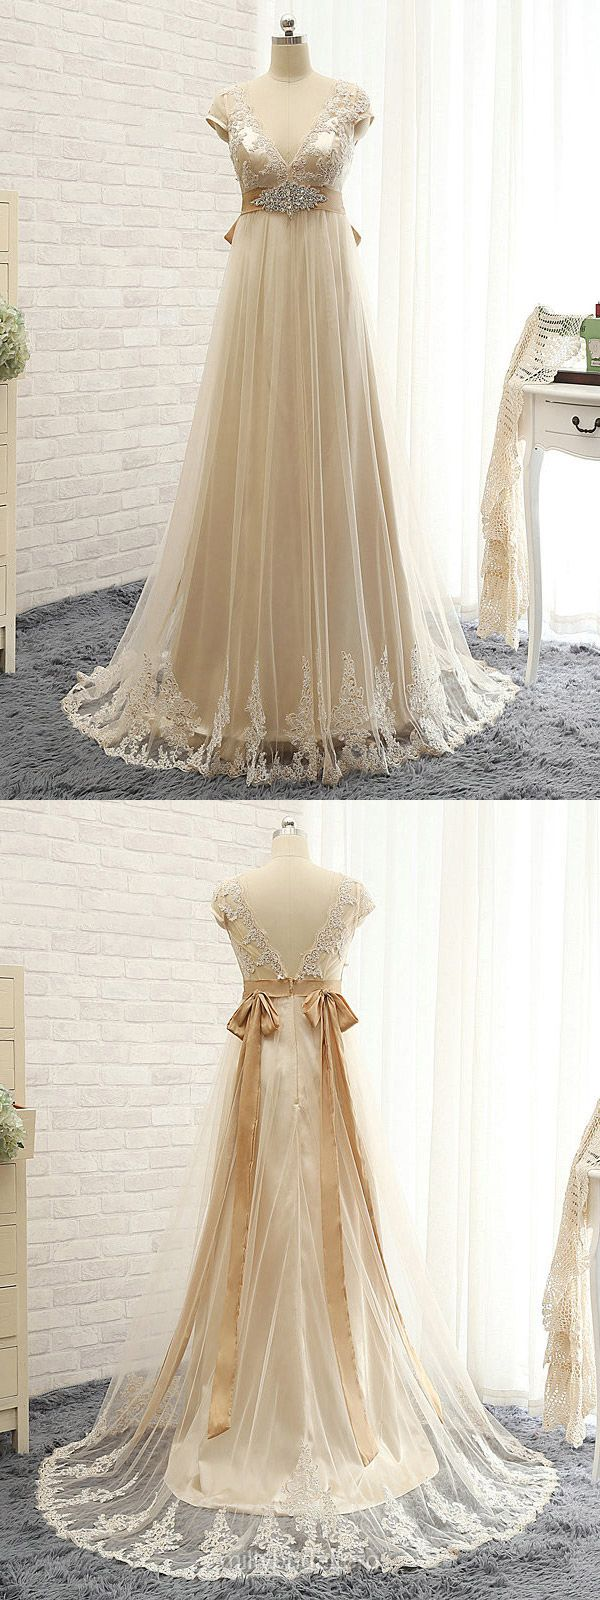 Champagne Bridesmaid Dresses Lace, Yellow Bridesmaid Dresses Long, Empire Bridesmaid Dresses V-neck, Tulle Bridesmaid Dresses Sweep Train with Appliques